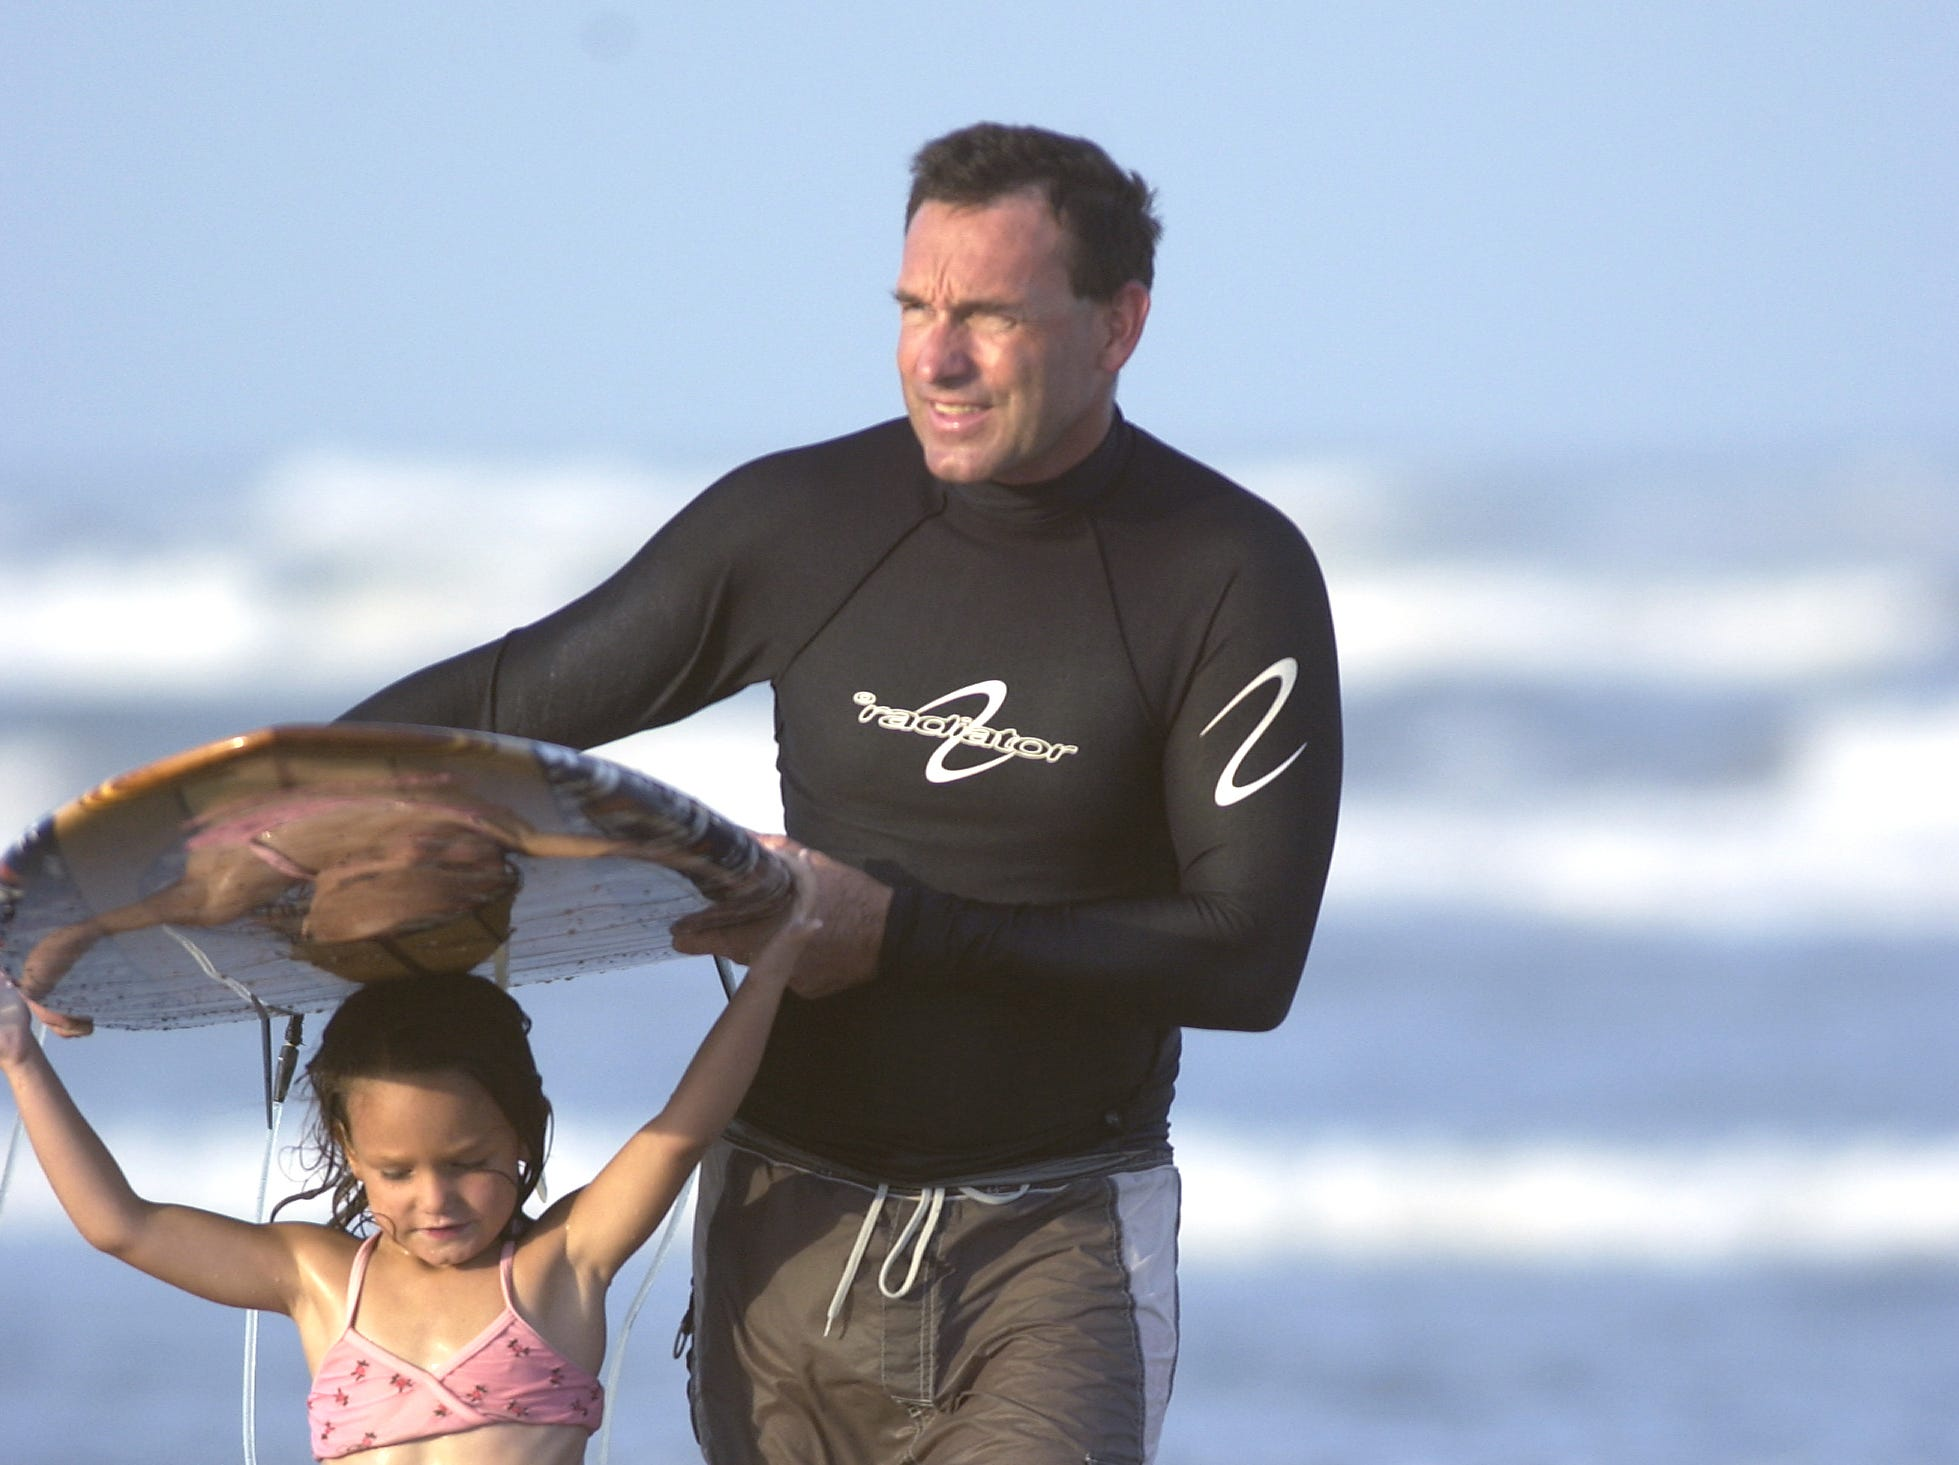 Natasha Maley, 5, learn to surf at Padre Island from her father, Michael Maley on June 13, 2003.